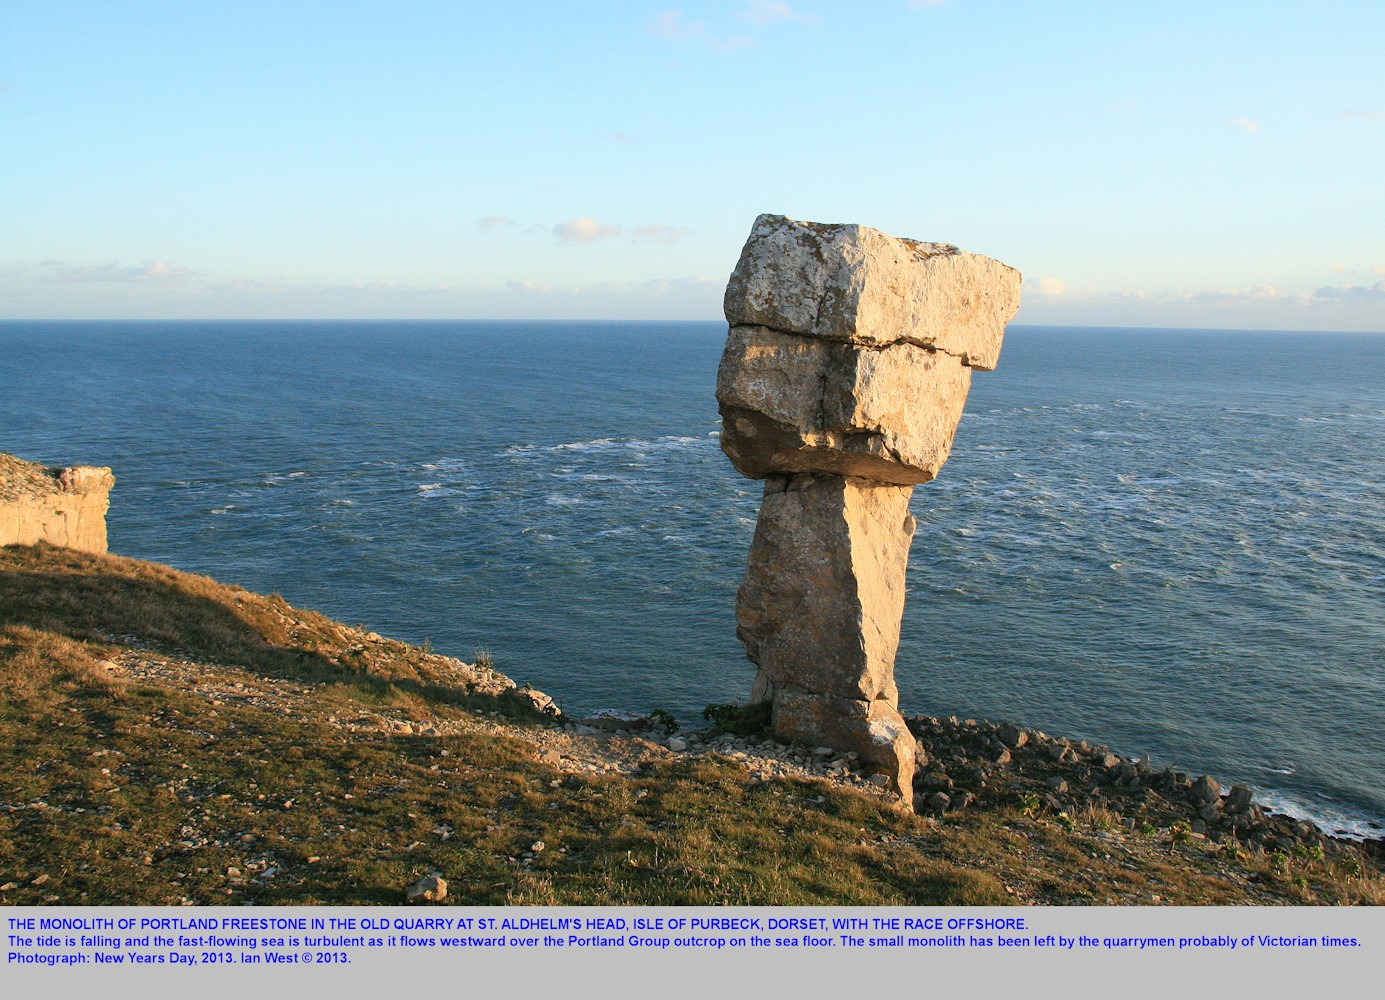 The monolith in the old quarry at St. Aldhelm's Head, Isle of Purbeck, Dorset, Jurassic Coast with the race also in view, 1st January 2013